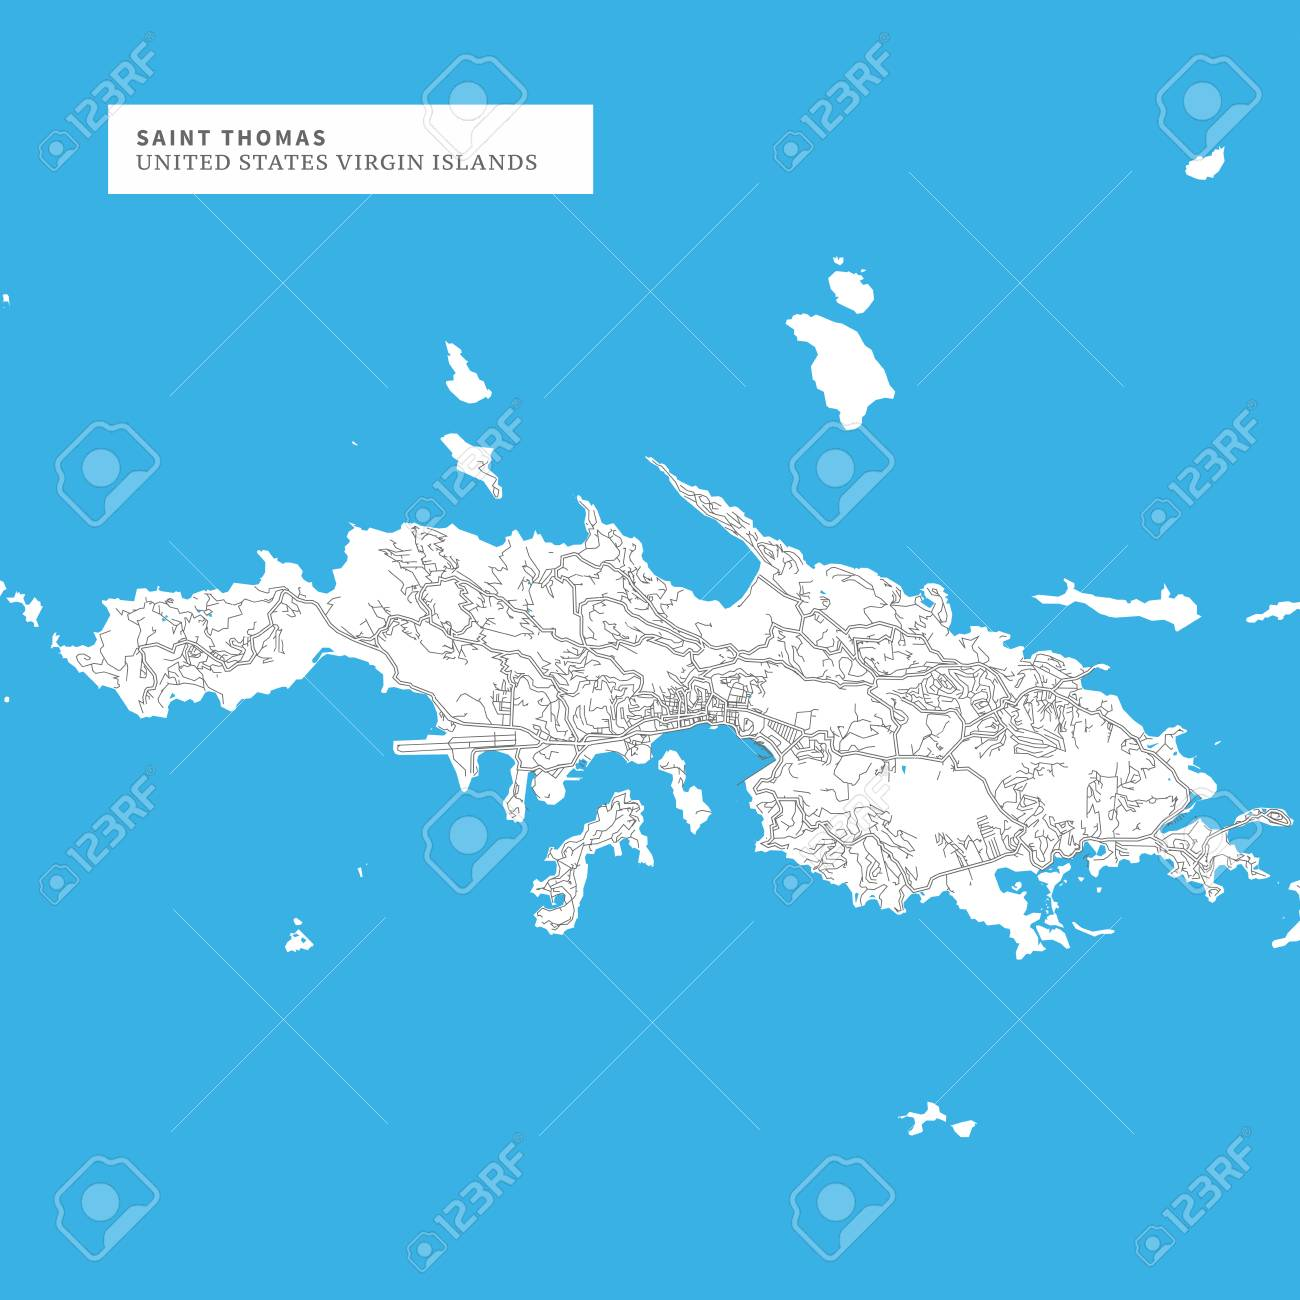 Map Of Saint Thomas Island, United States Virgin Islands, Contains ...